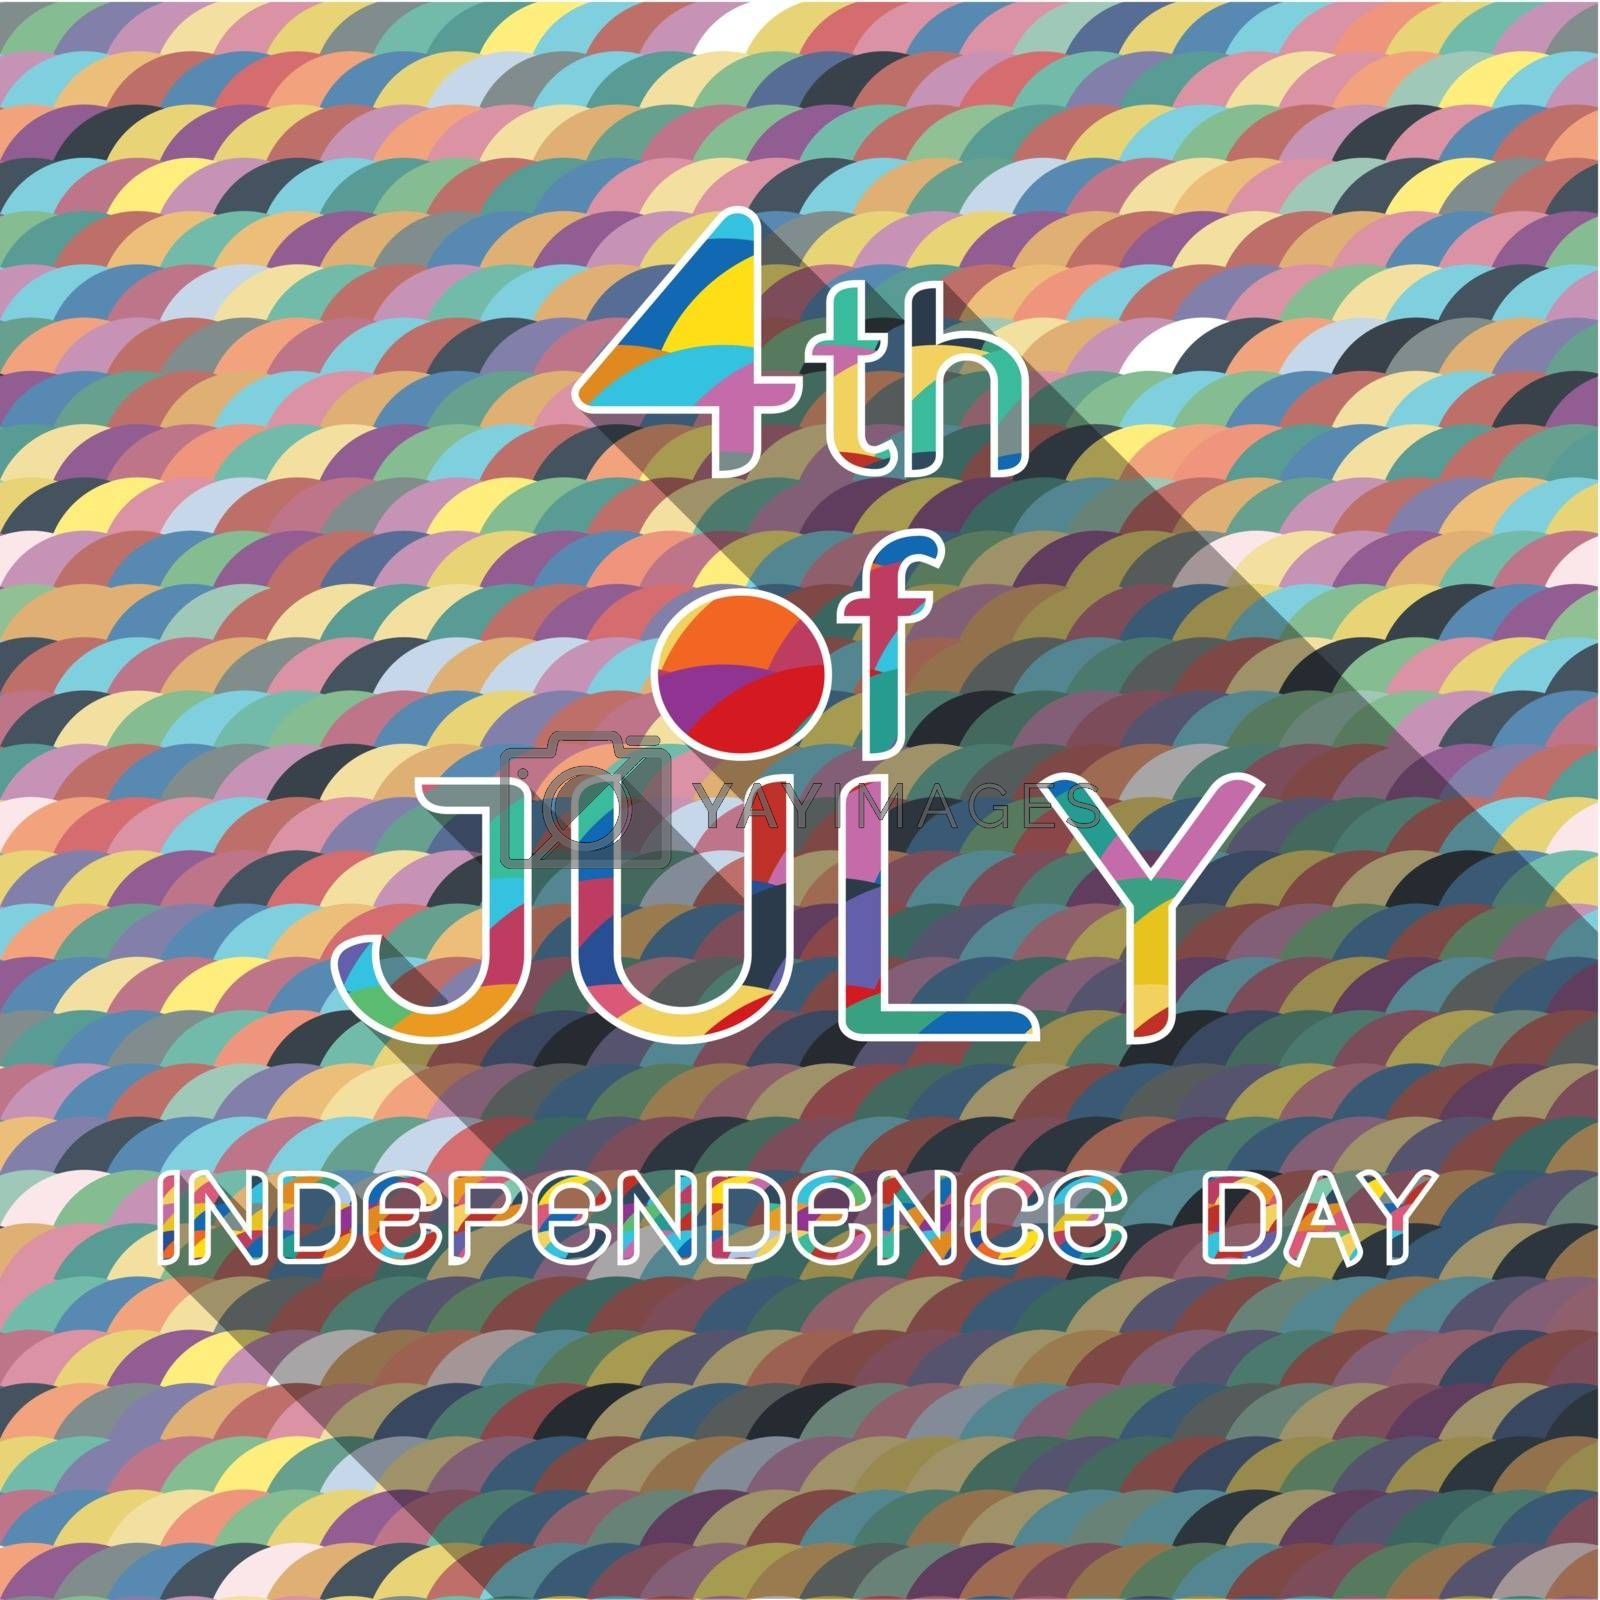 4th of july of american independence day with pattern background and shadow